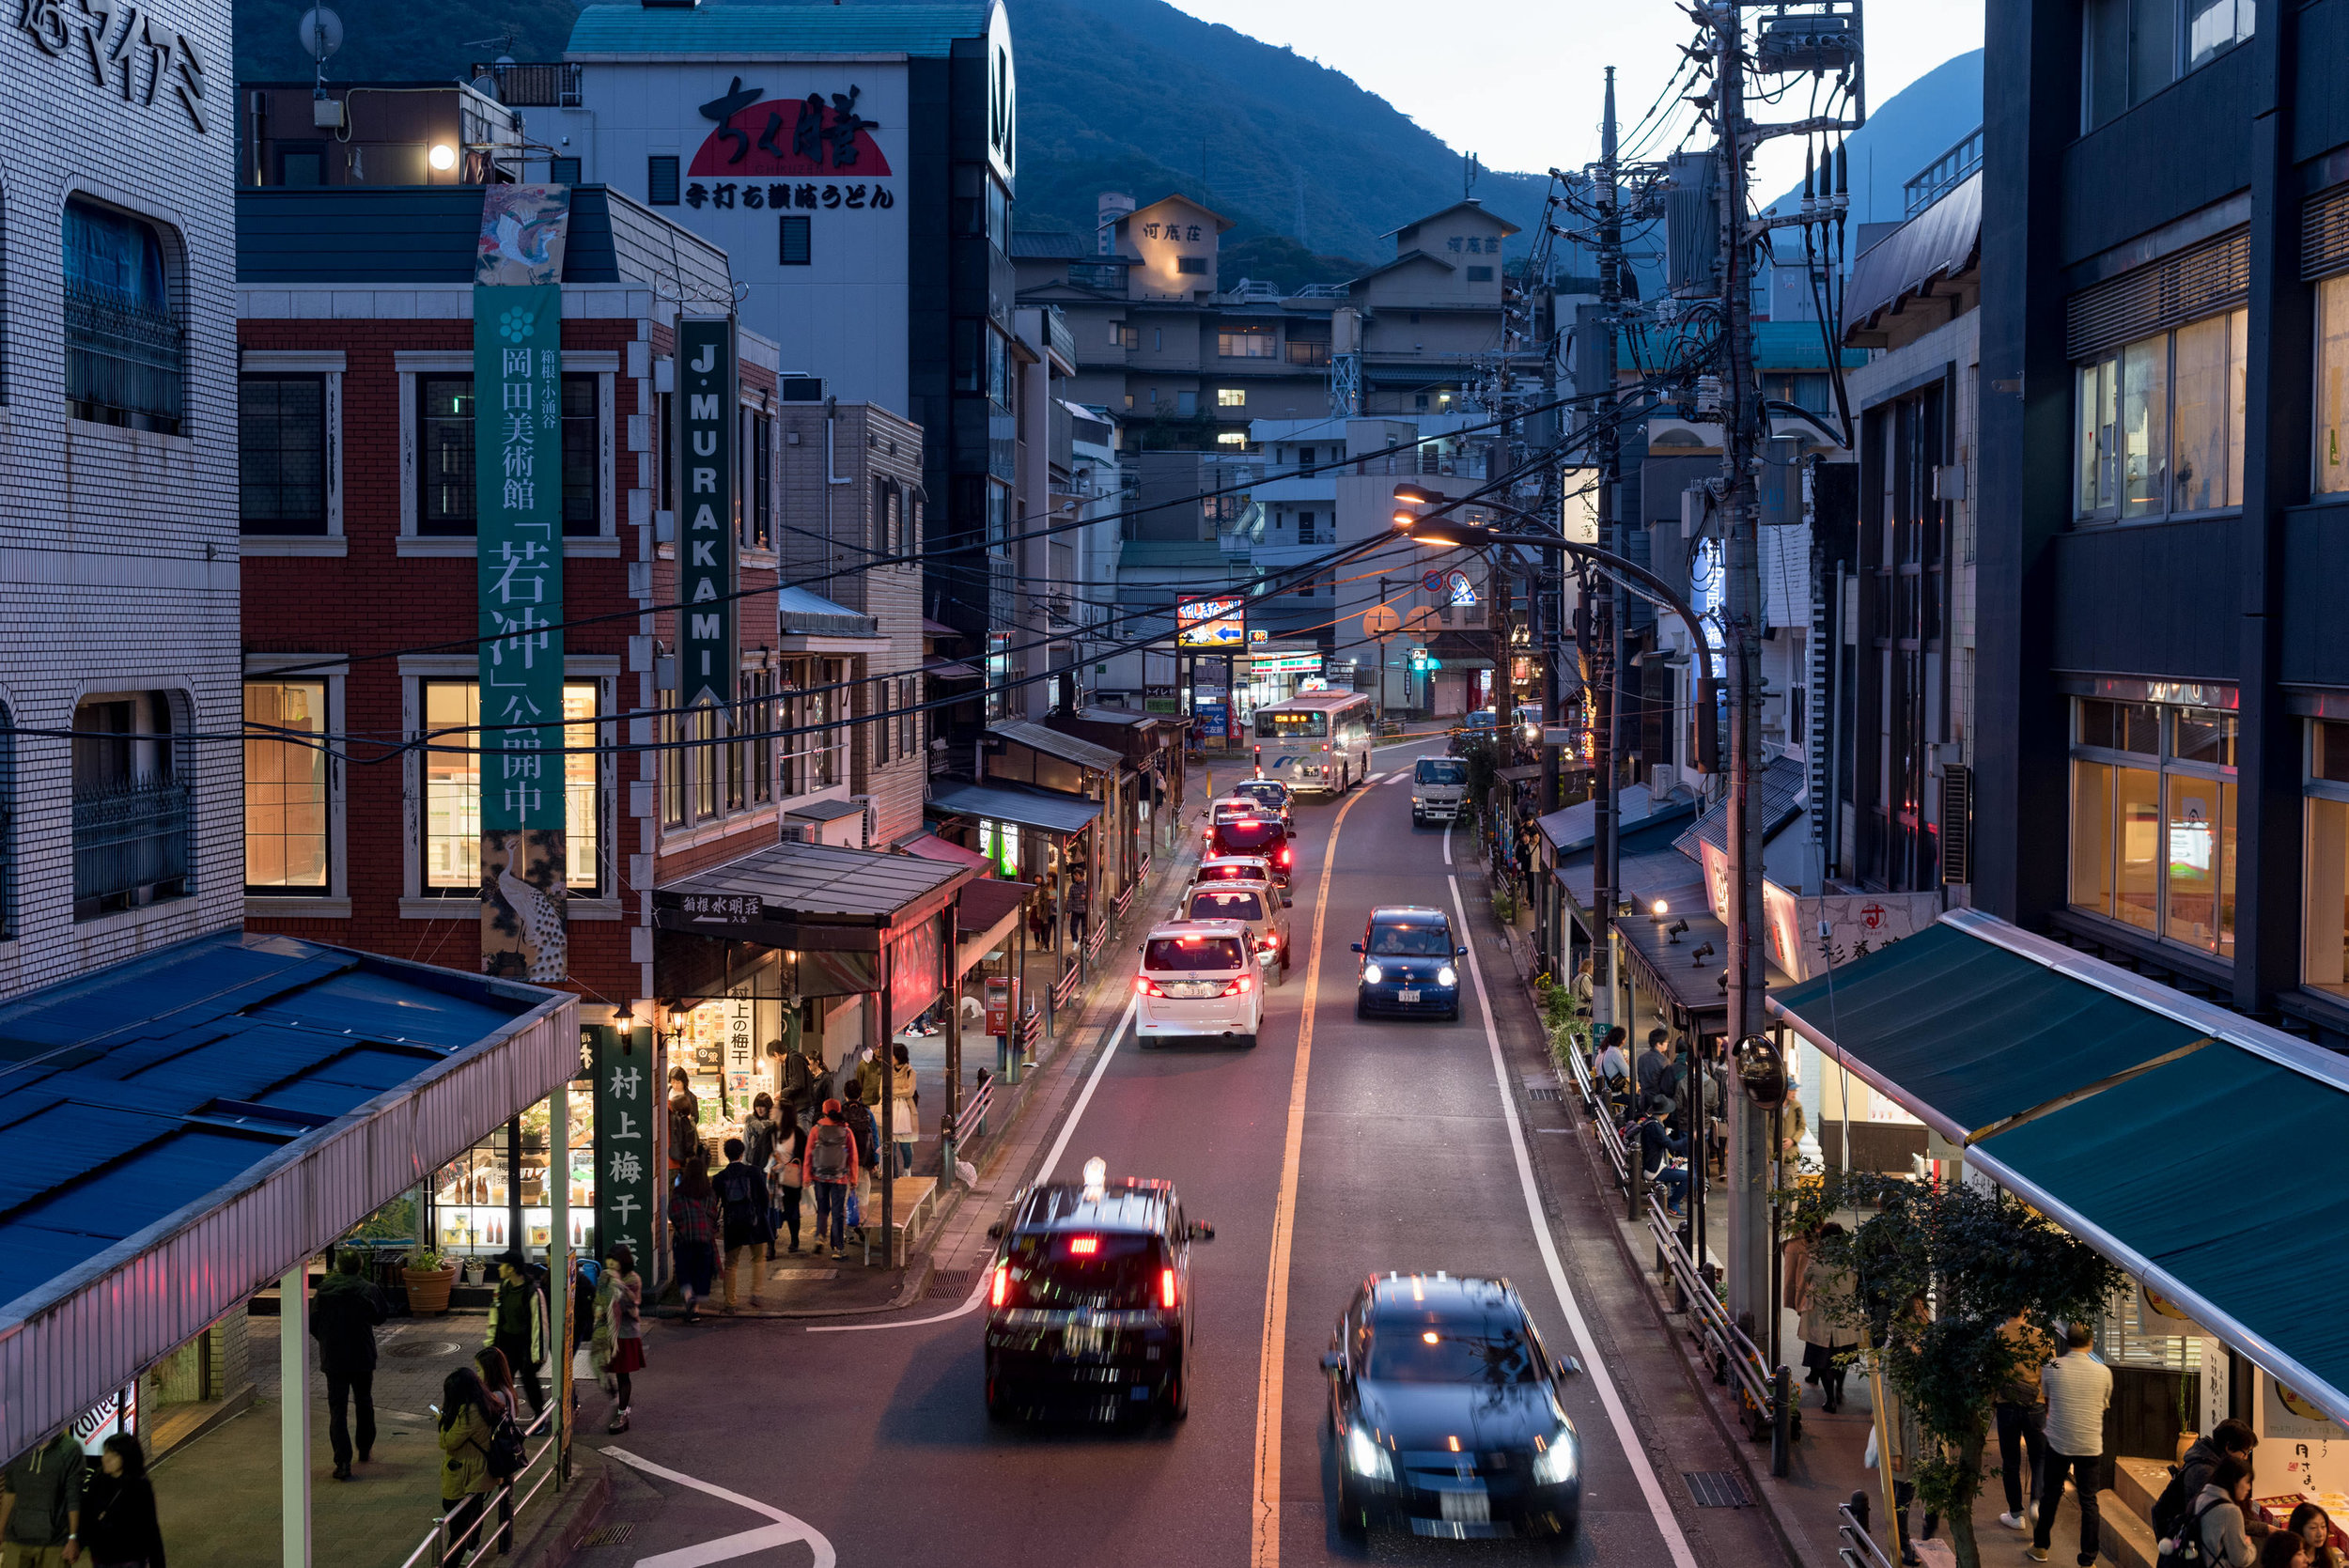 Hakone-Yumoto Station in the Evening  Travel Guide for Day-trip to Hakone from Tokyo